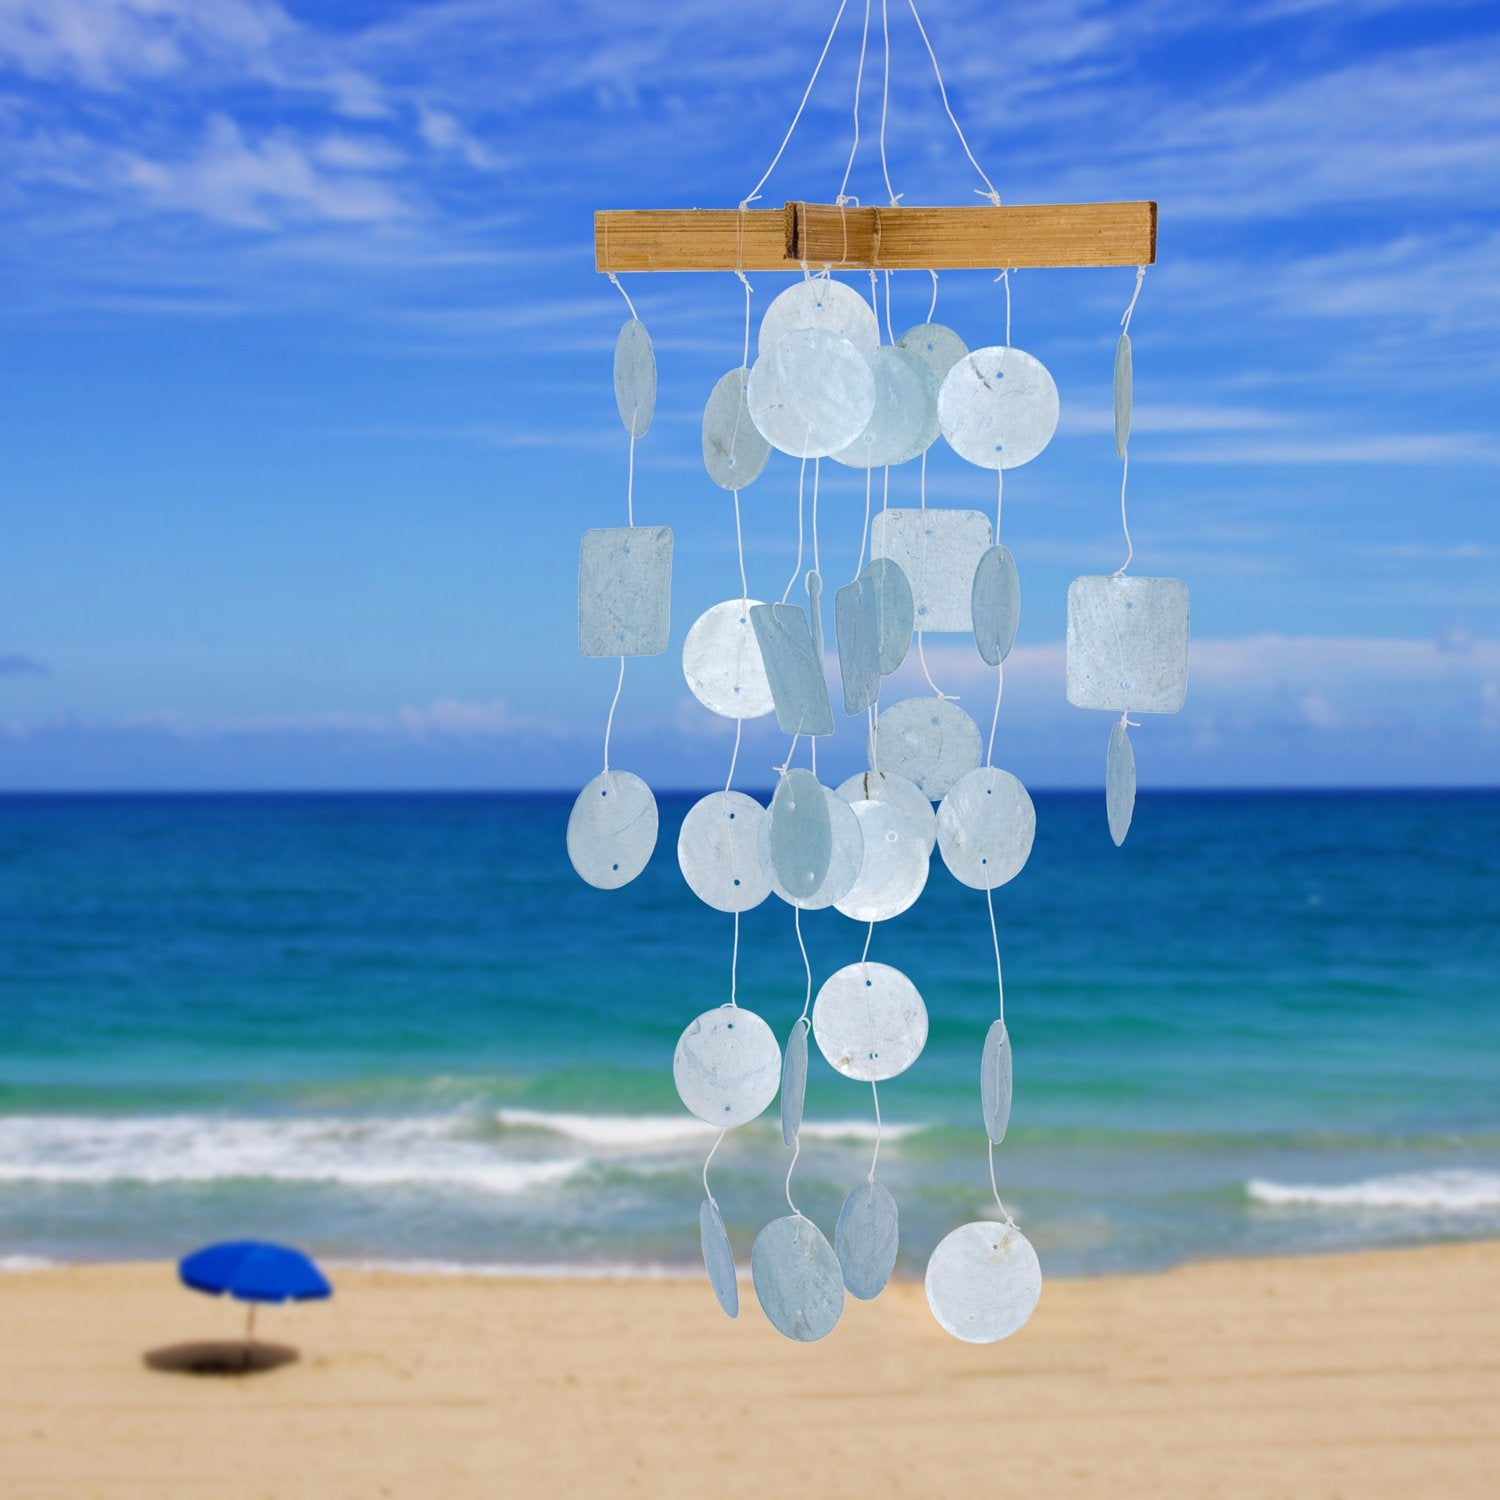 Mini Capiz Chime - Light Blue lifestyle image